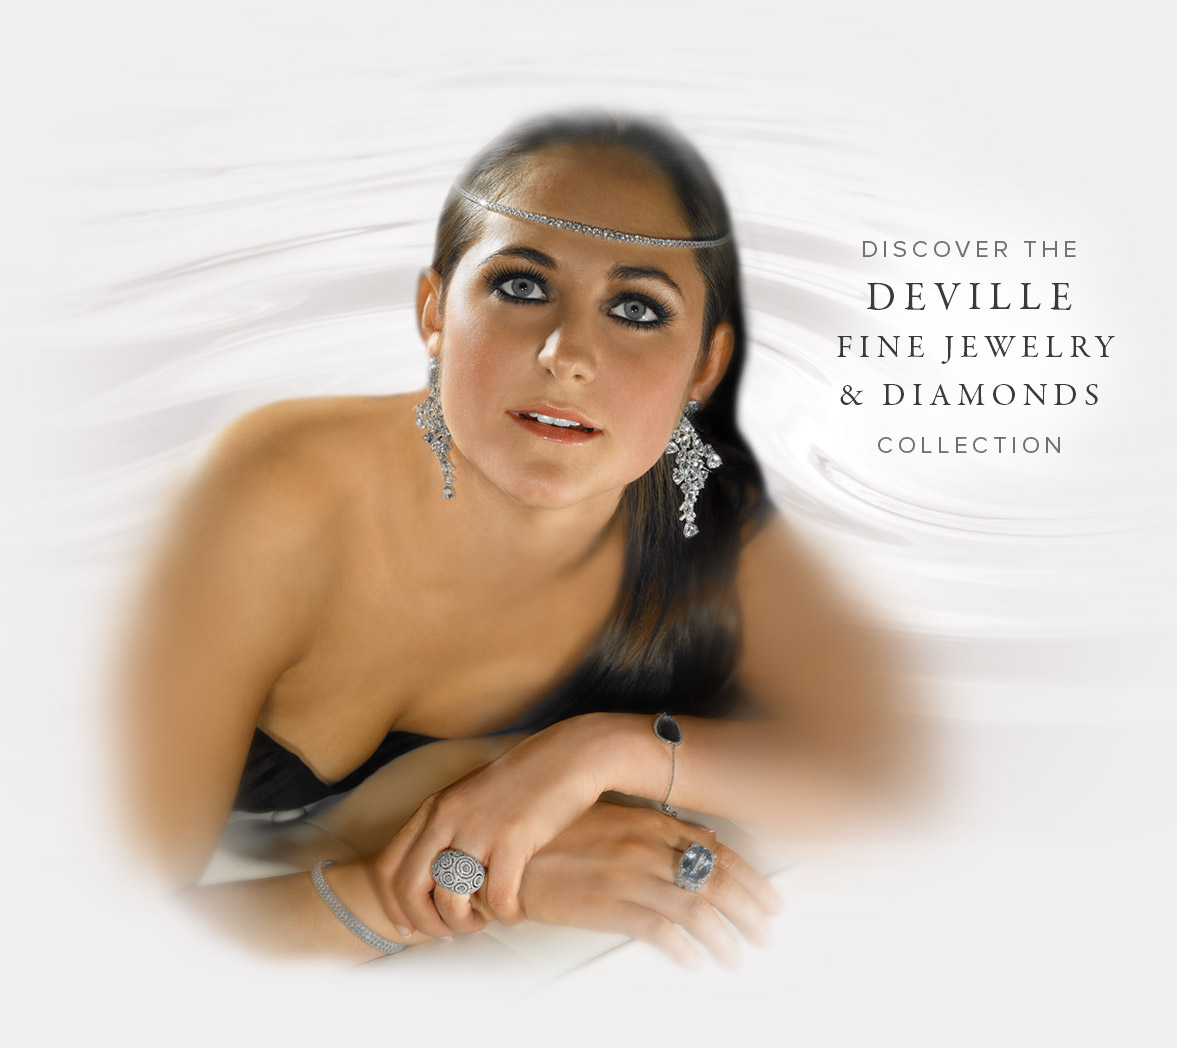 Buy diamonds,engagement rings, jewelry/best jewelry store Houston Deville Fine Jewelry and Diamonds